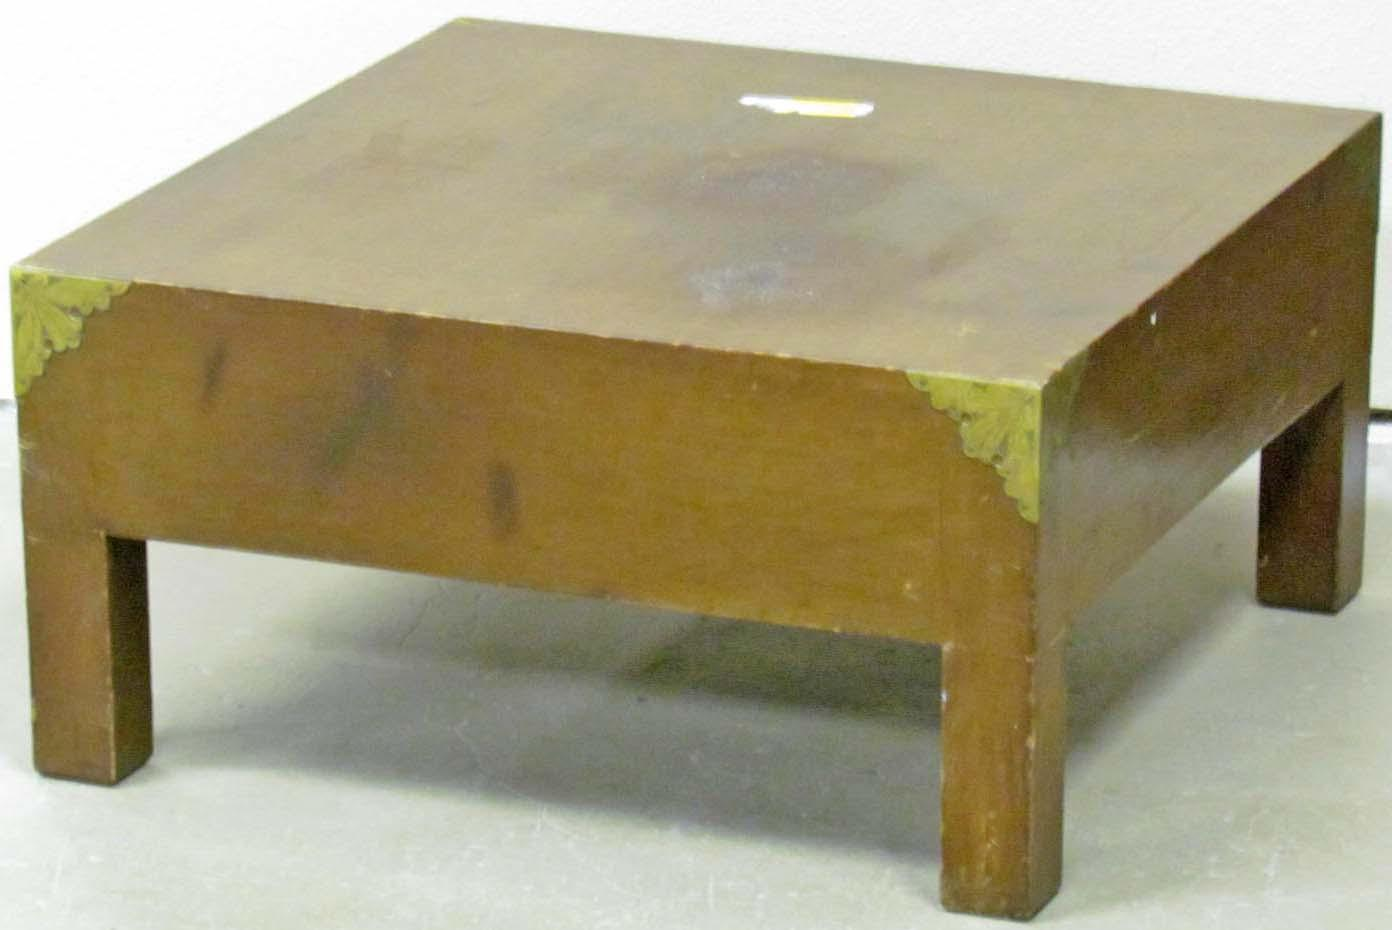 ... Image 2 : SMALL WOODEN SIDE TABLE W/ METAL CORNERS